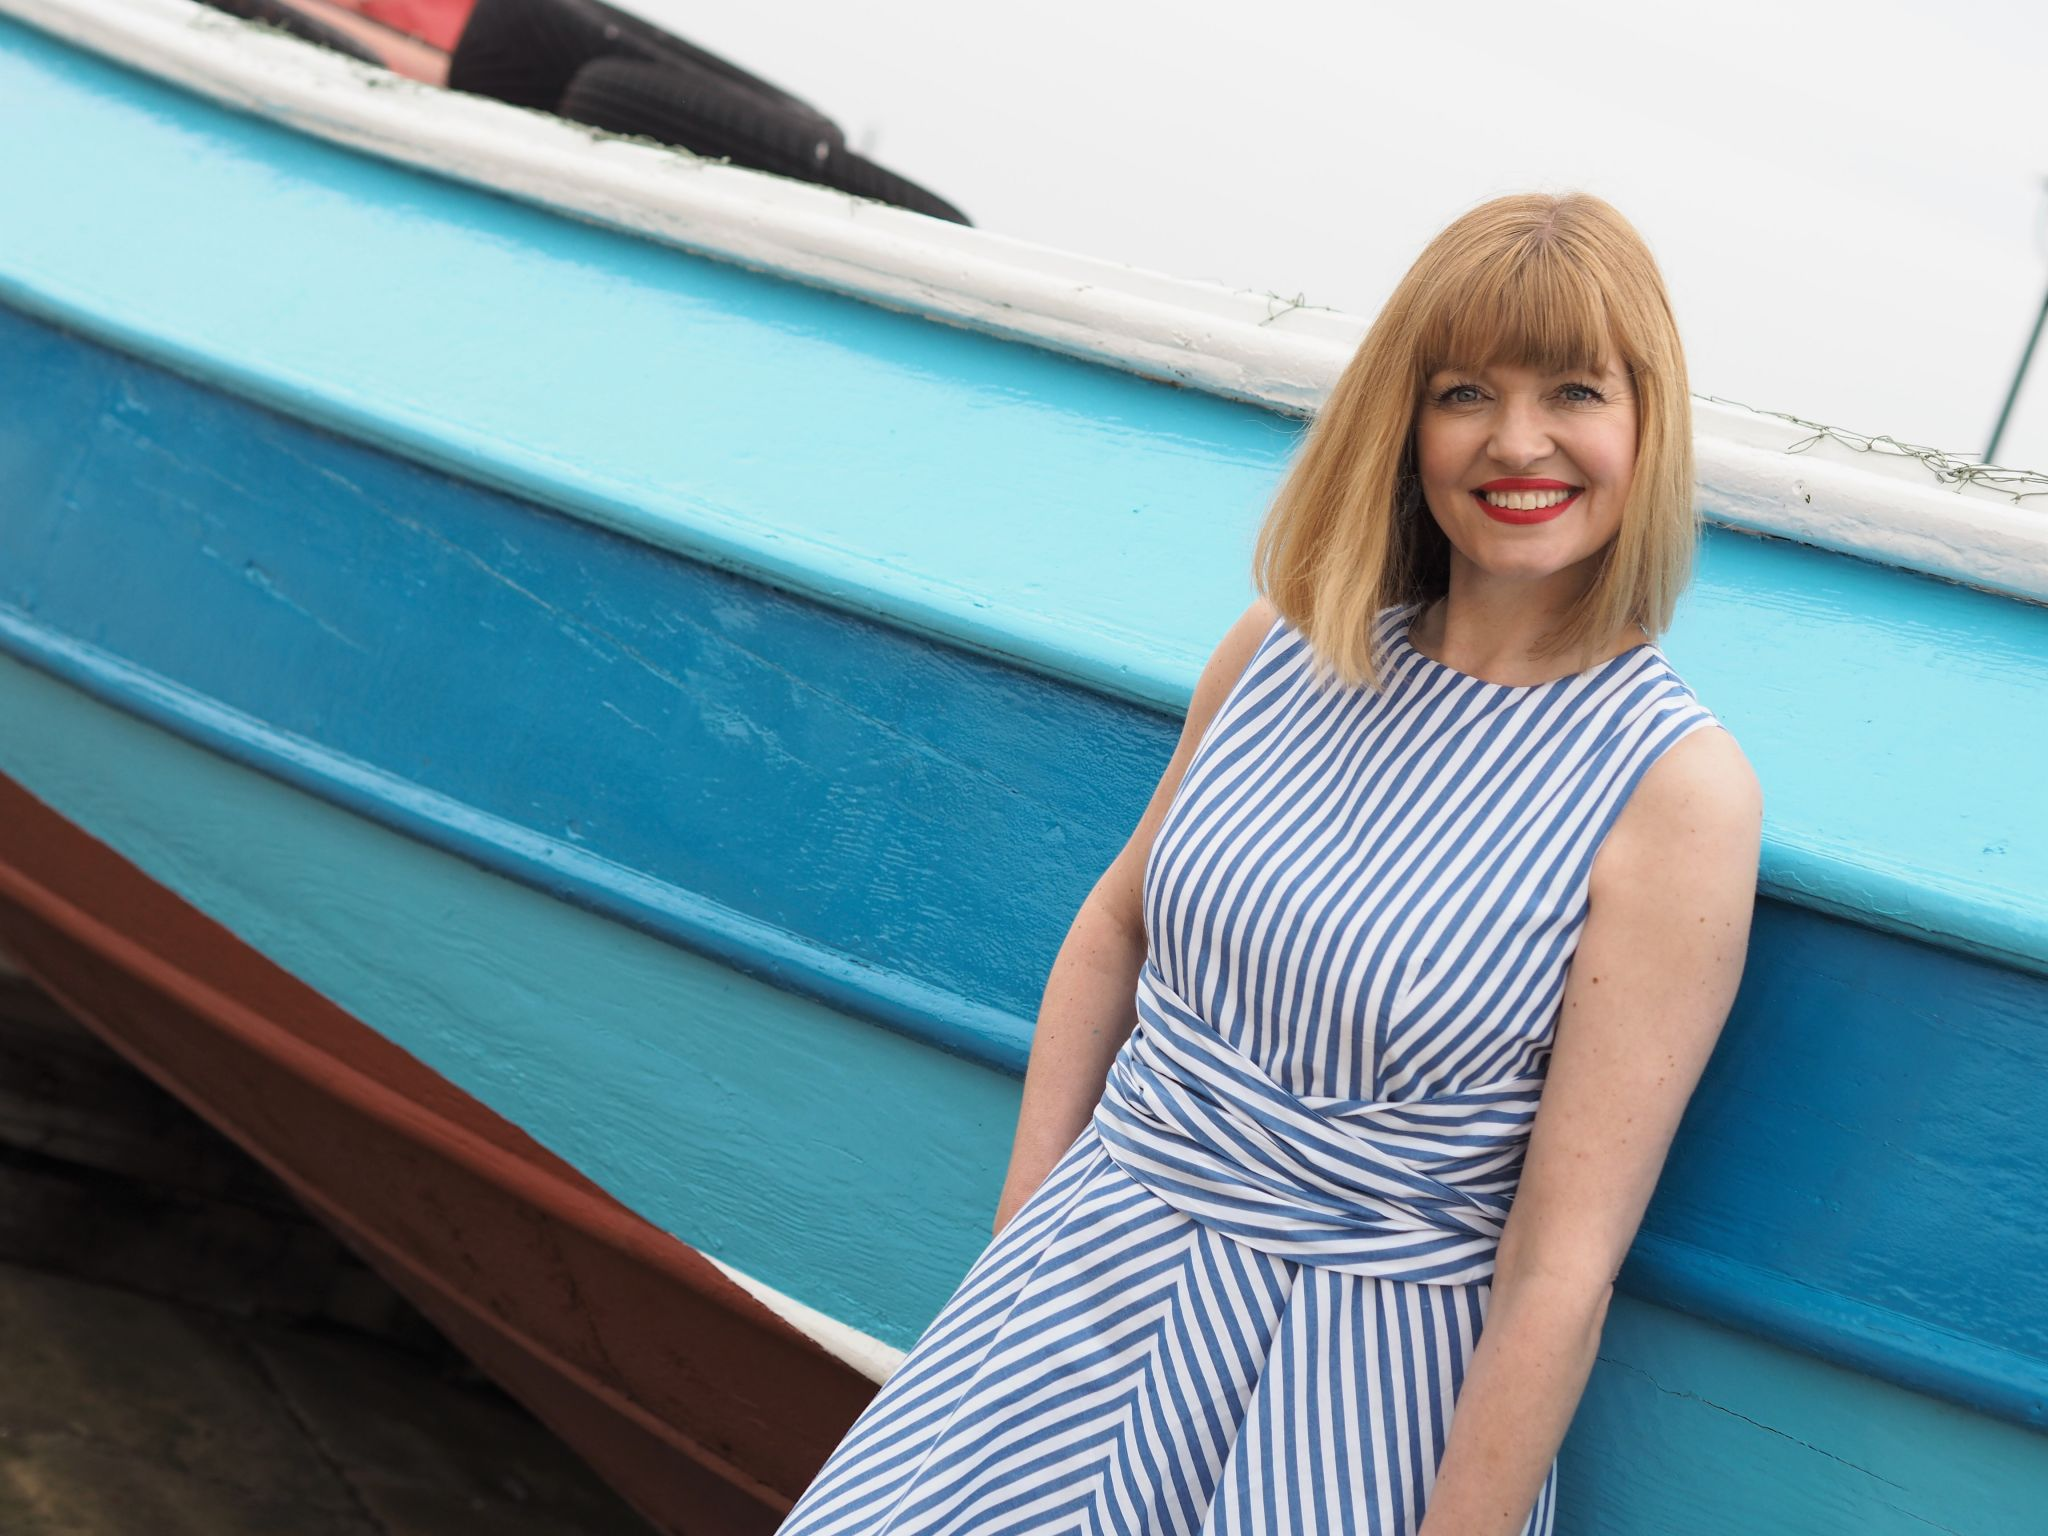 Blue striped 1950s style dress